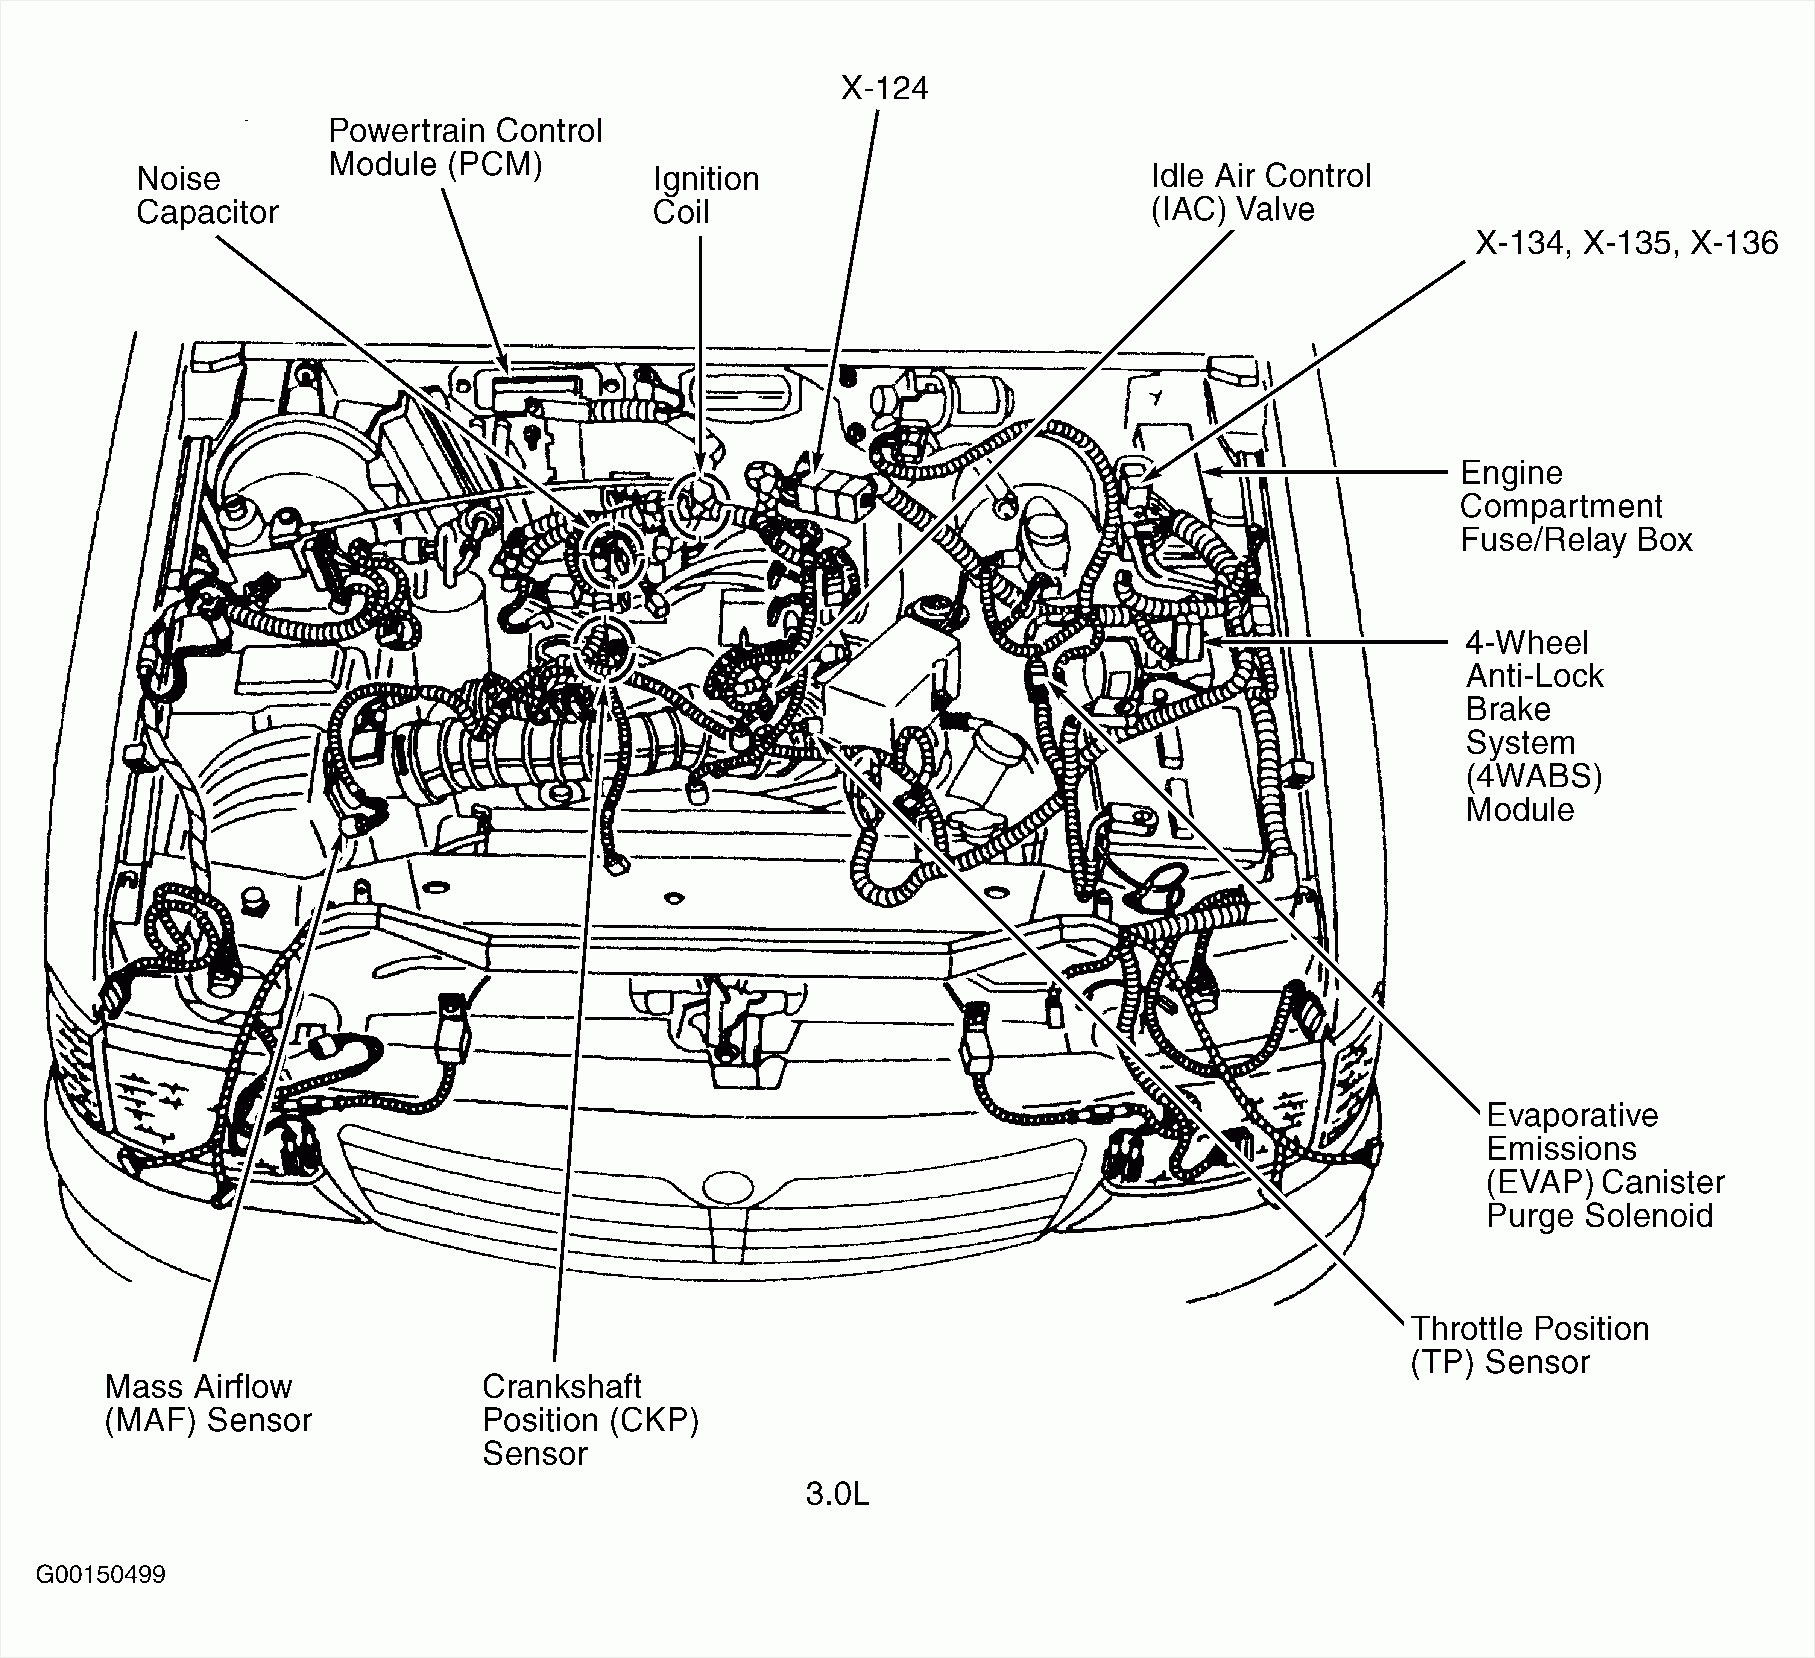 chevy v6 vortec diagram data wiring diagramschevy 4 3 v6 engine head diagram data wiring diagram update v6 vortec engine diagram chevy v6 vortec diagram